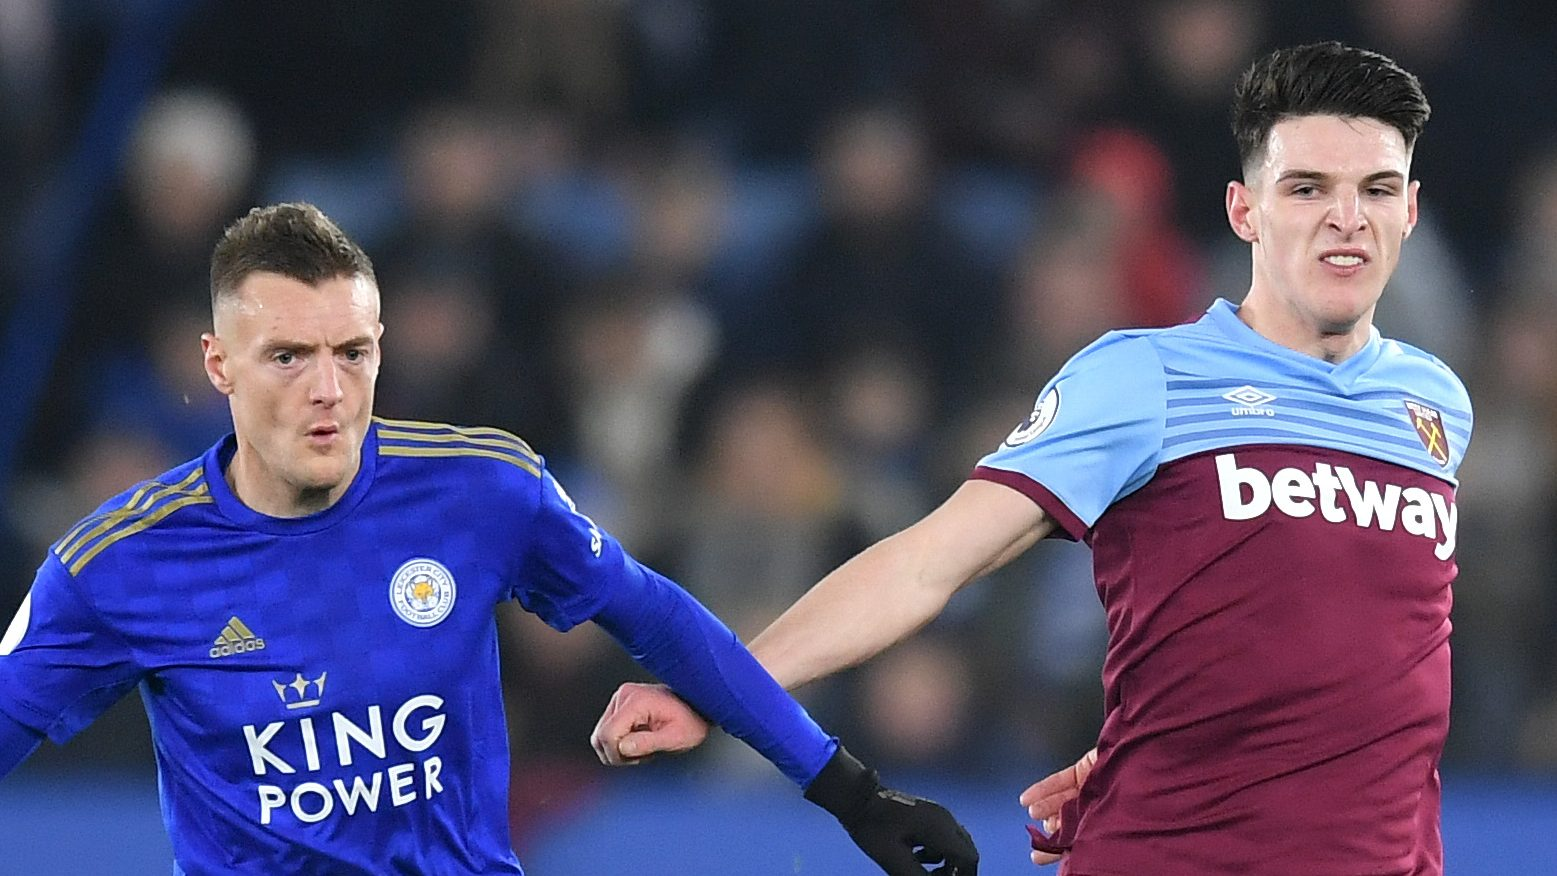 West Ham vs Leicester City: How to watch, live stream, start time, odds